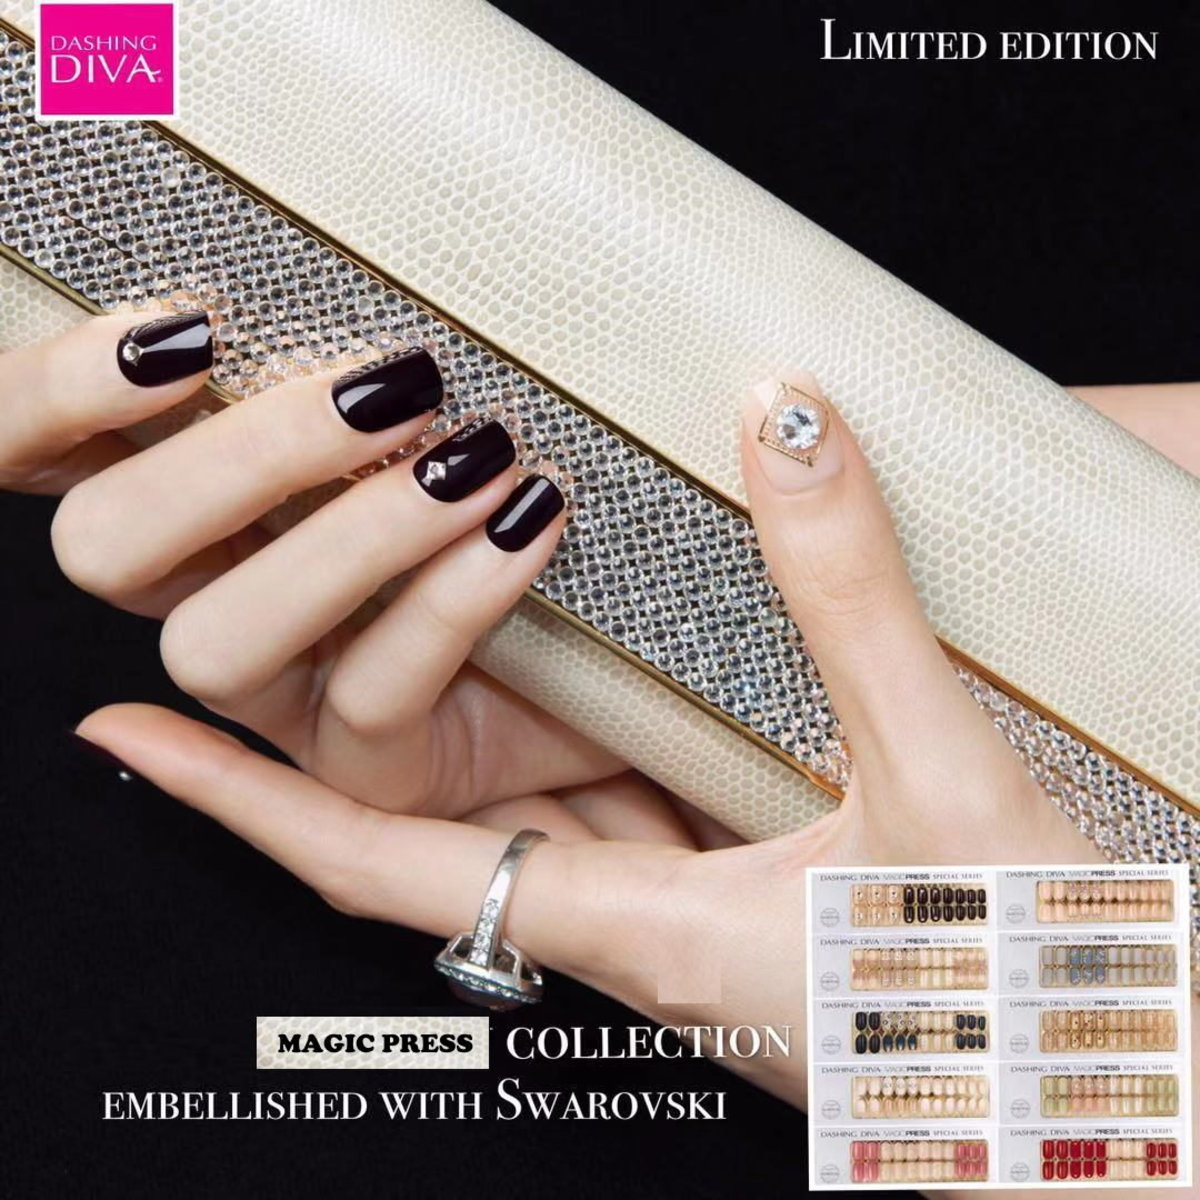 Magic Press Limited Edition SET Embellished with Crystals from Swarovski